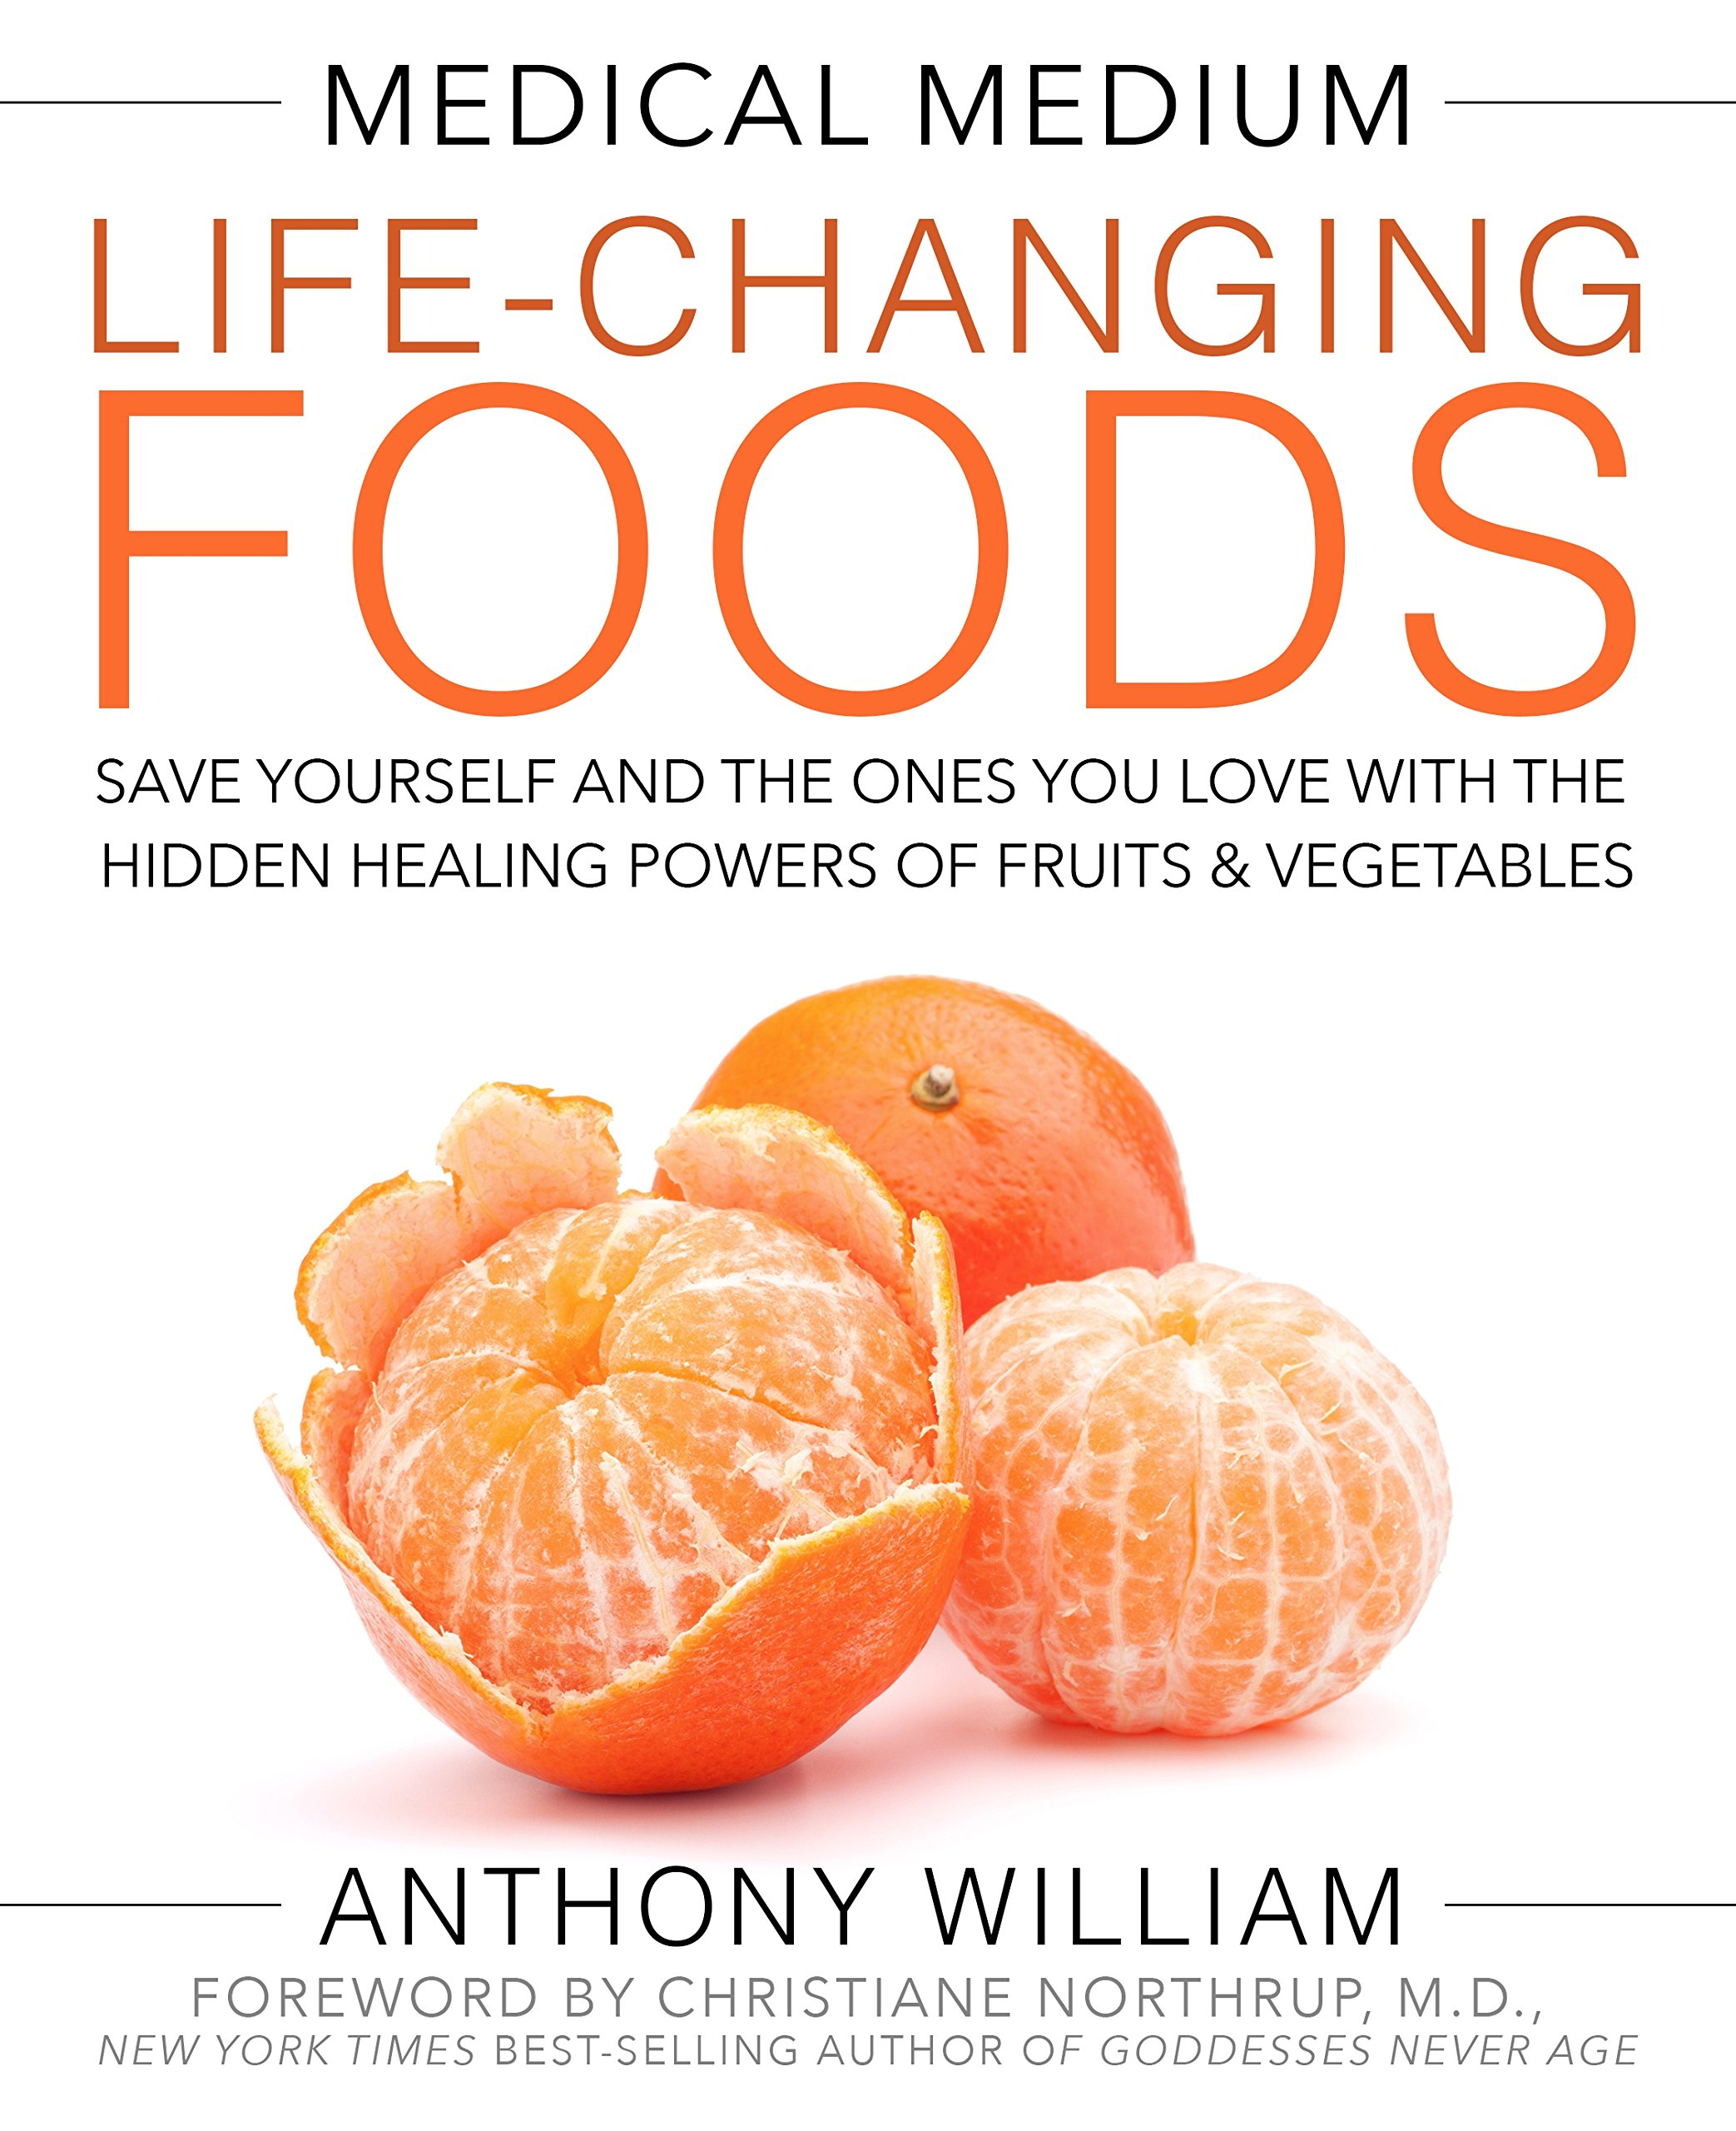 81Lcp5S7PvL - Medical Medium Life-Changing Foods: Save Yourself and the Ones You Love with the Hidden Healing Powers of Fruits & Vegetables